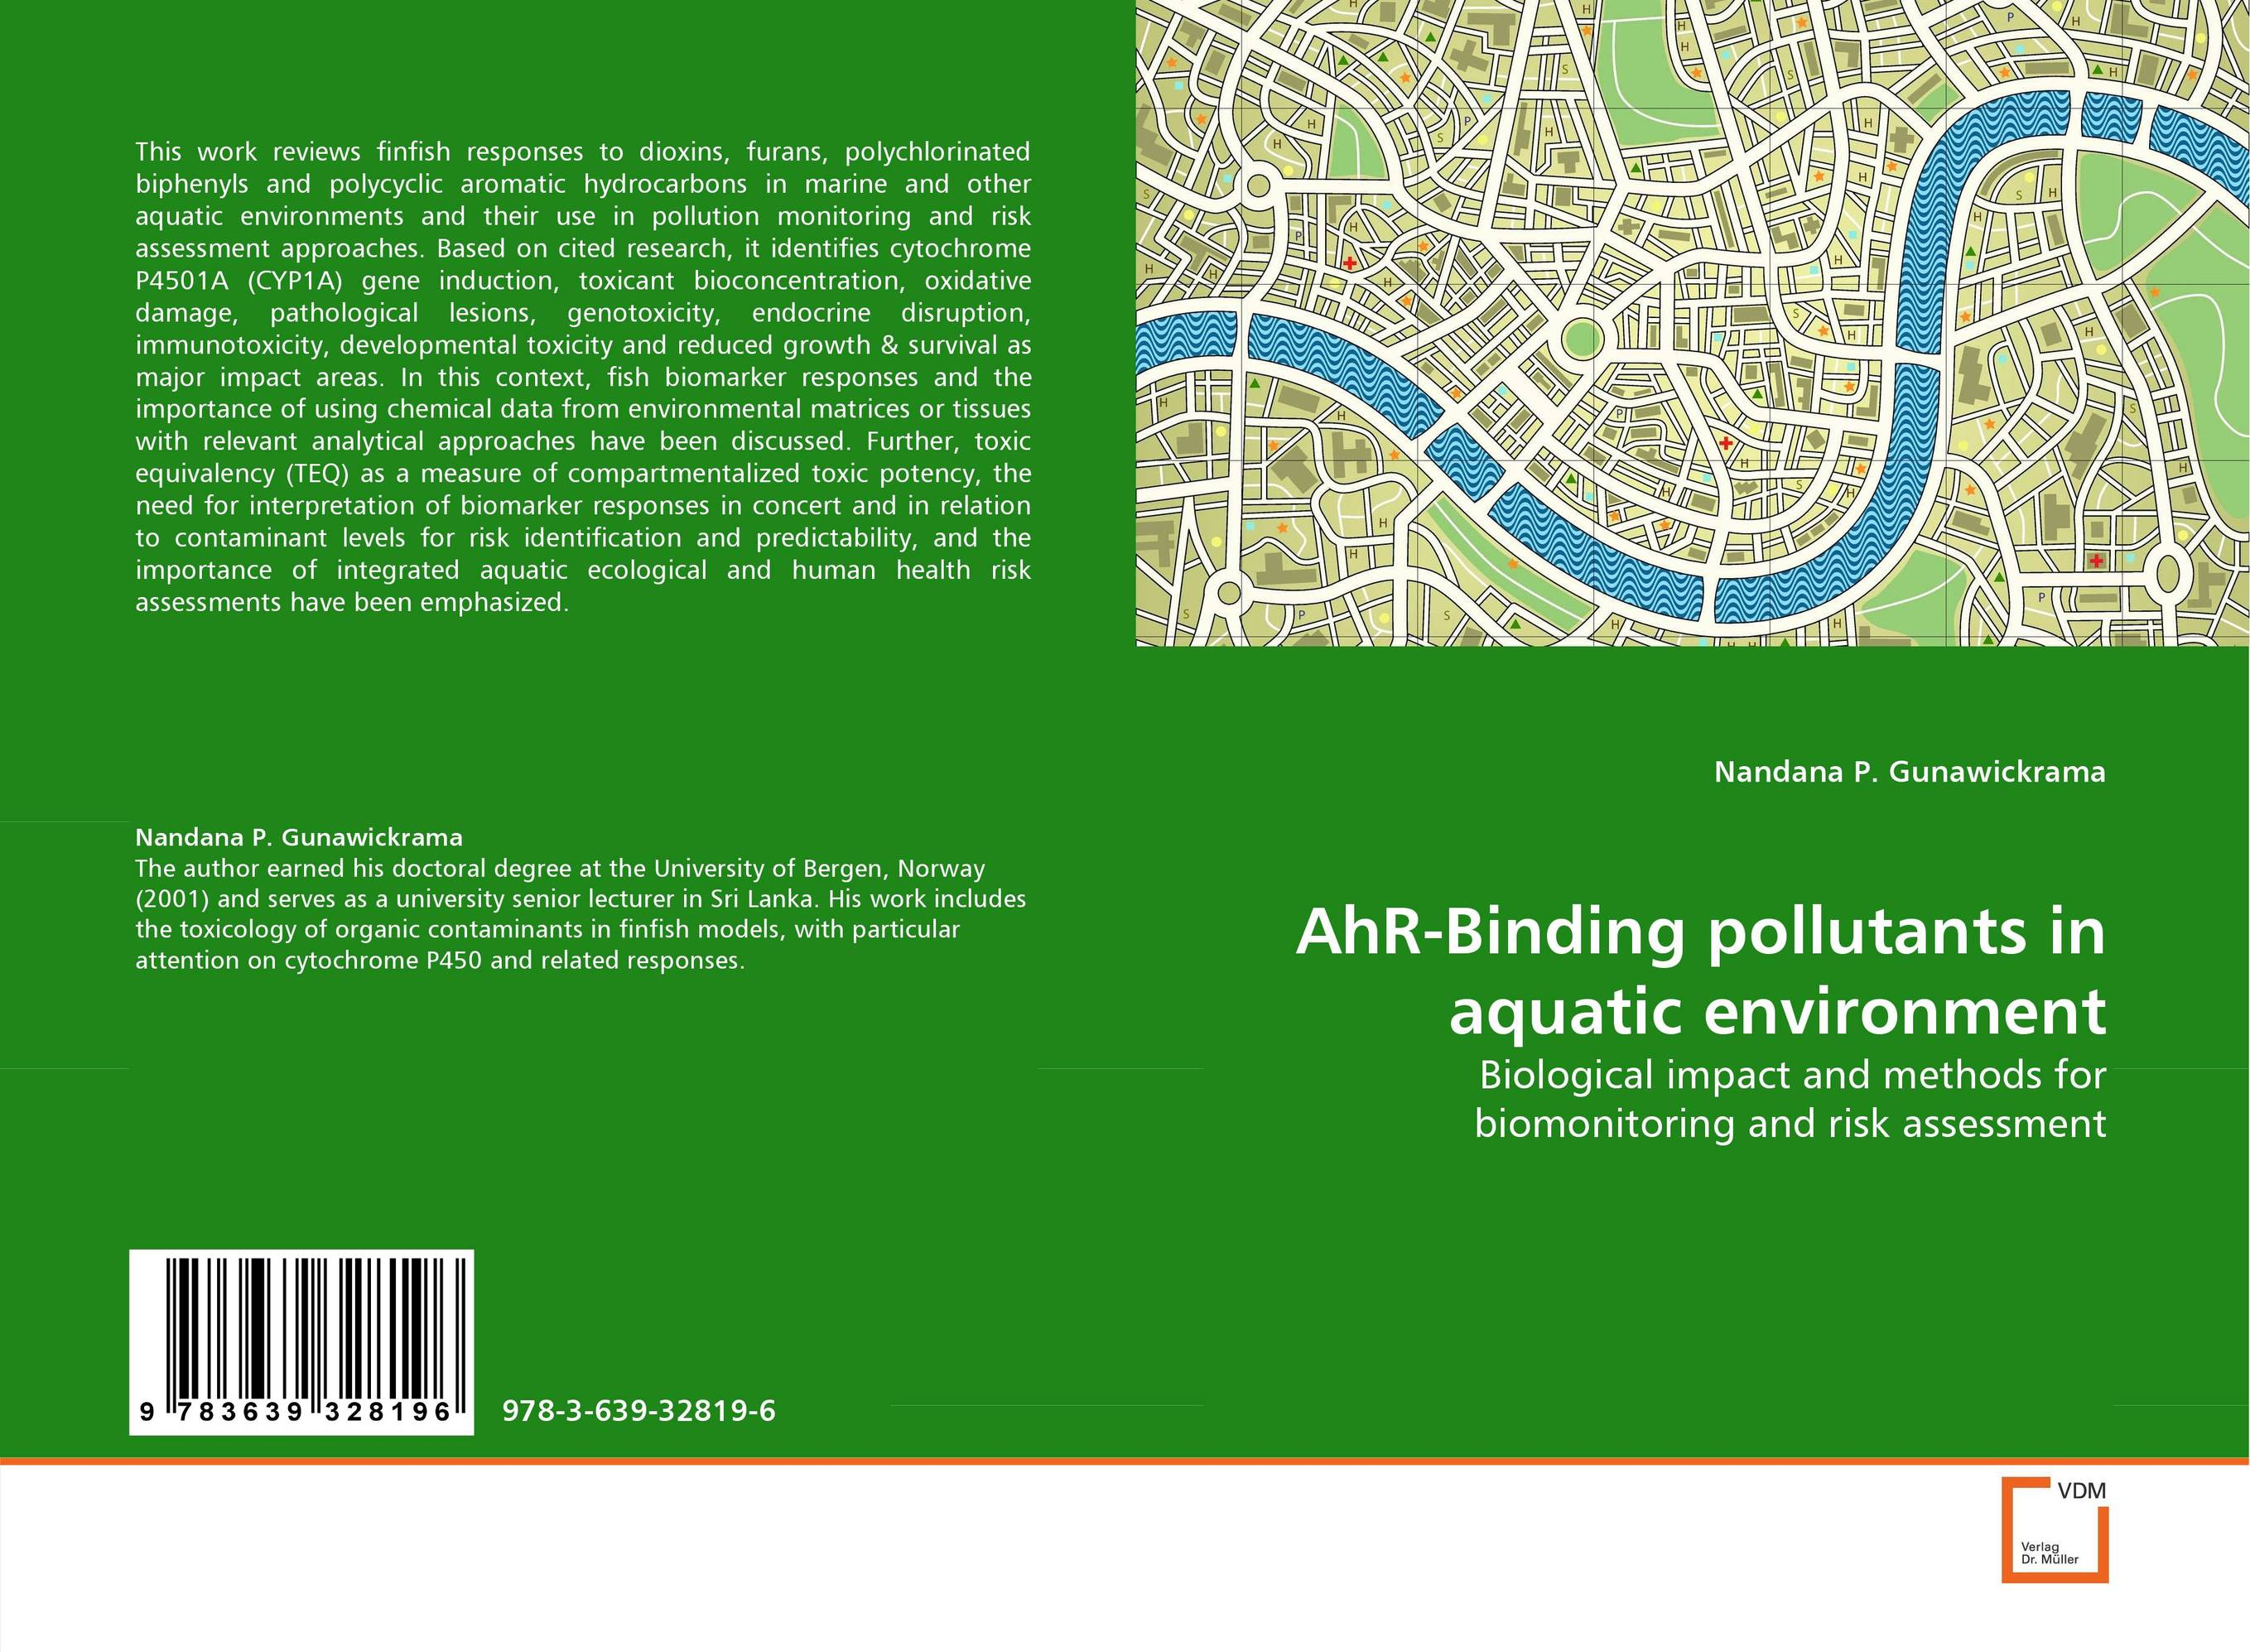 AhR-Binding pollutants in aquatic environment risk regulation and administrative constitutionalism